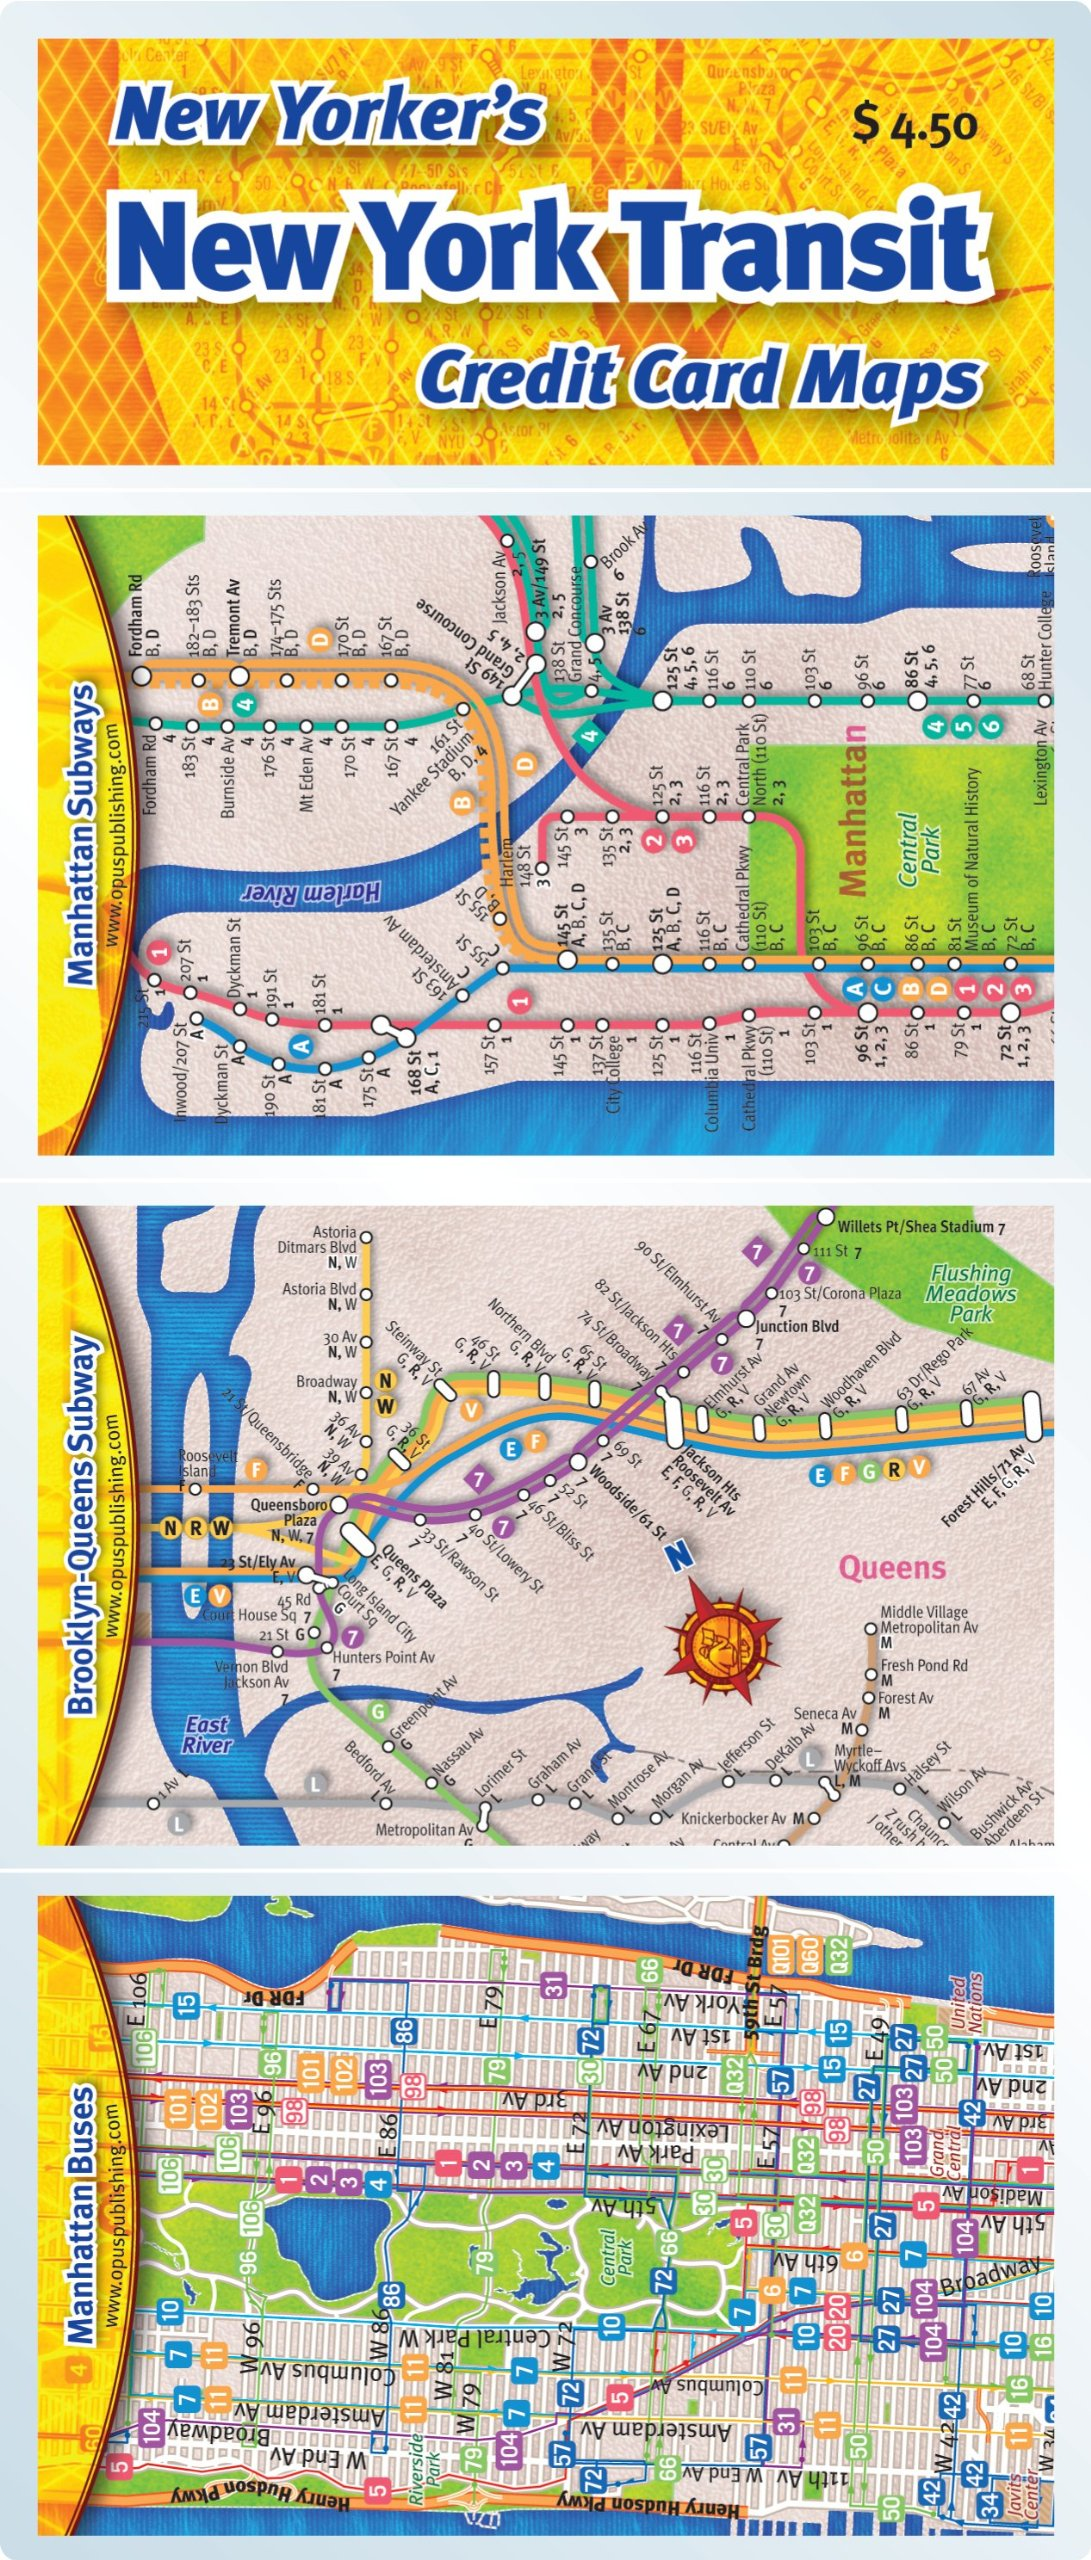 Manhattan Mta Mini Subway Map And Address Finder.Credit Card Maps New York Transit Set Opus Publishing